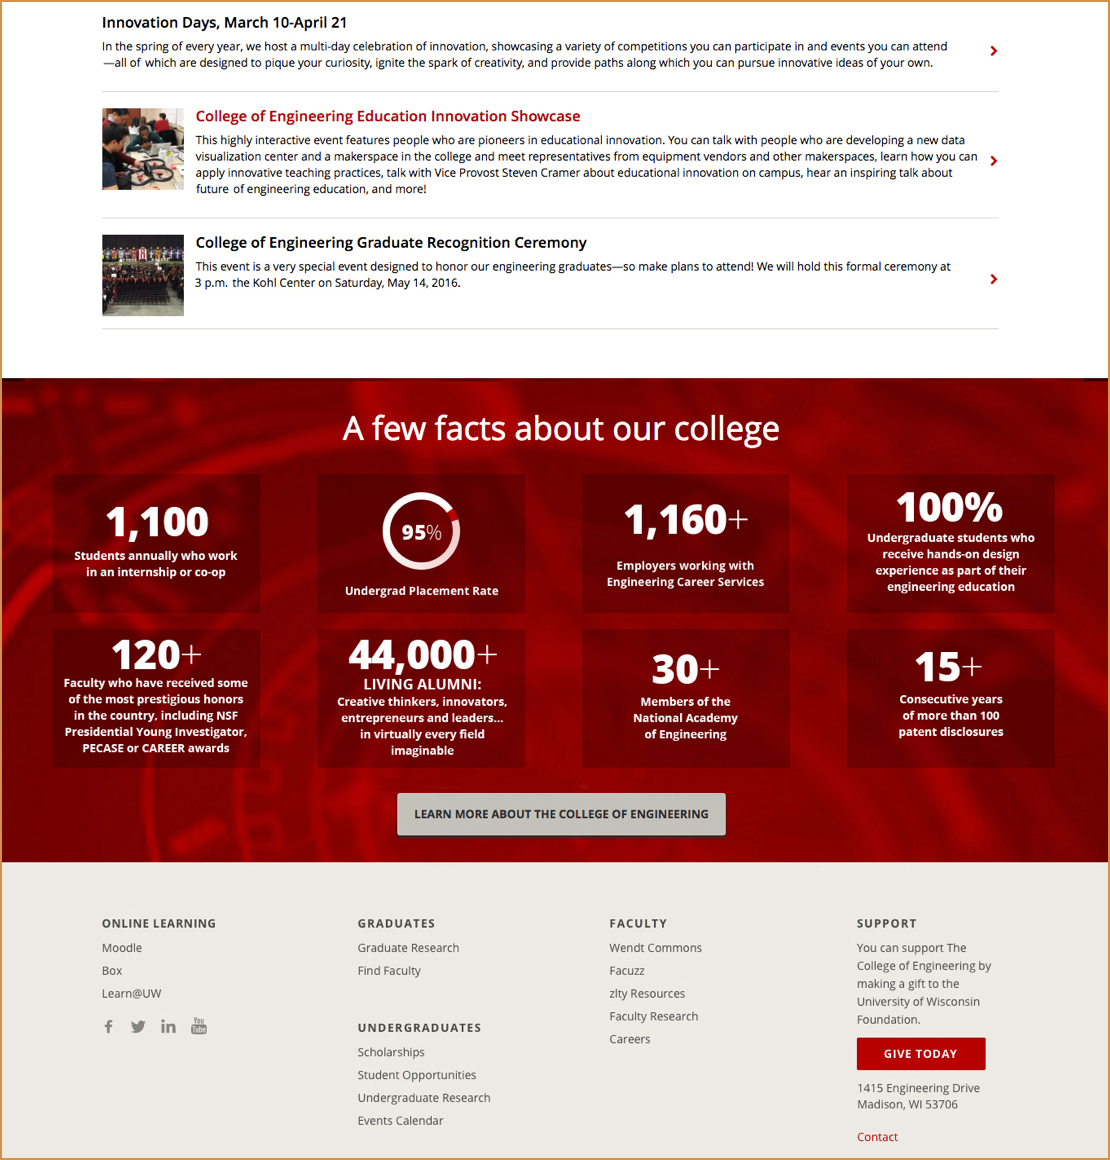 Website page showing facts about UWCOE